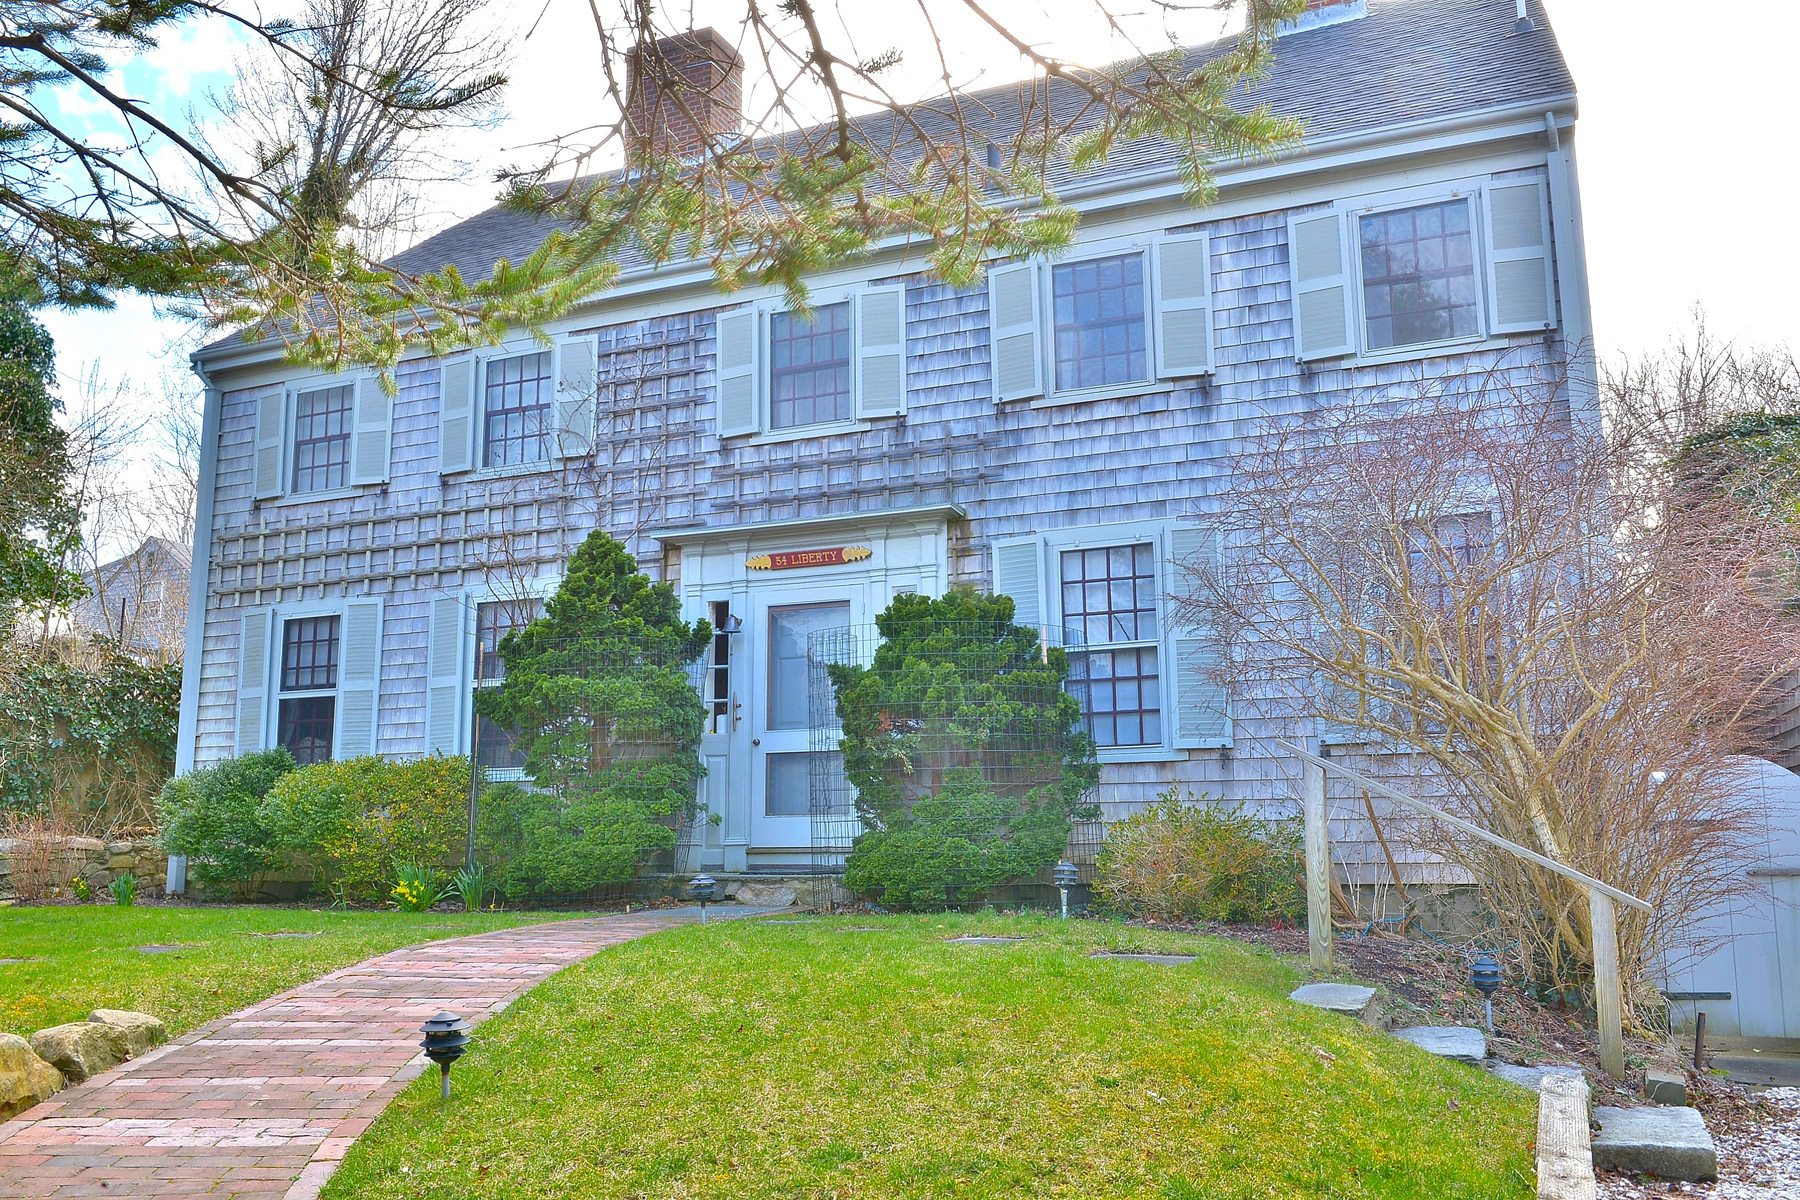 Single Family Home for Sale at A Magical Property in Historic Downtown Nantucket 34 Liberty Street Nantucket, Massachusetts, 02554 United States